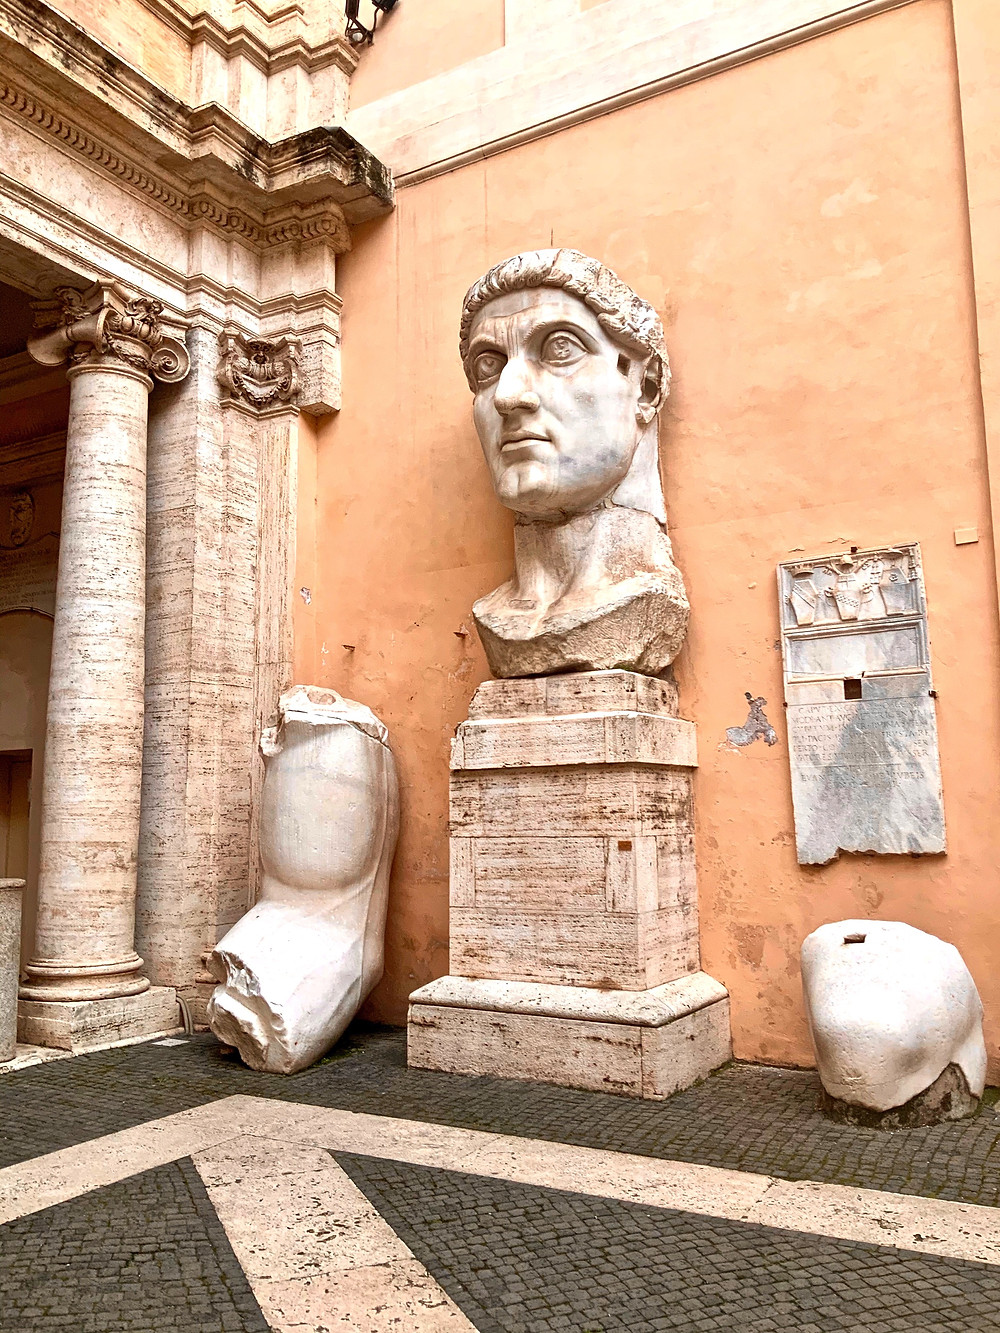 remains of the colossus of Constantine in the Capitoline Museums